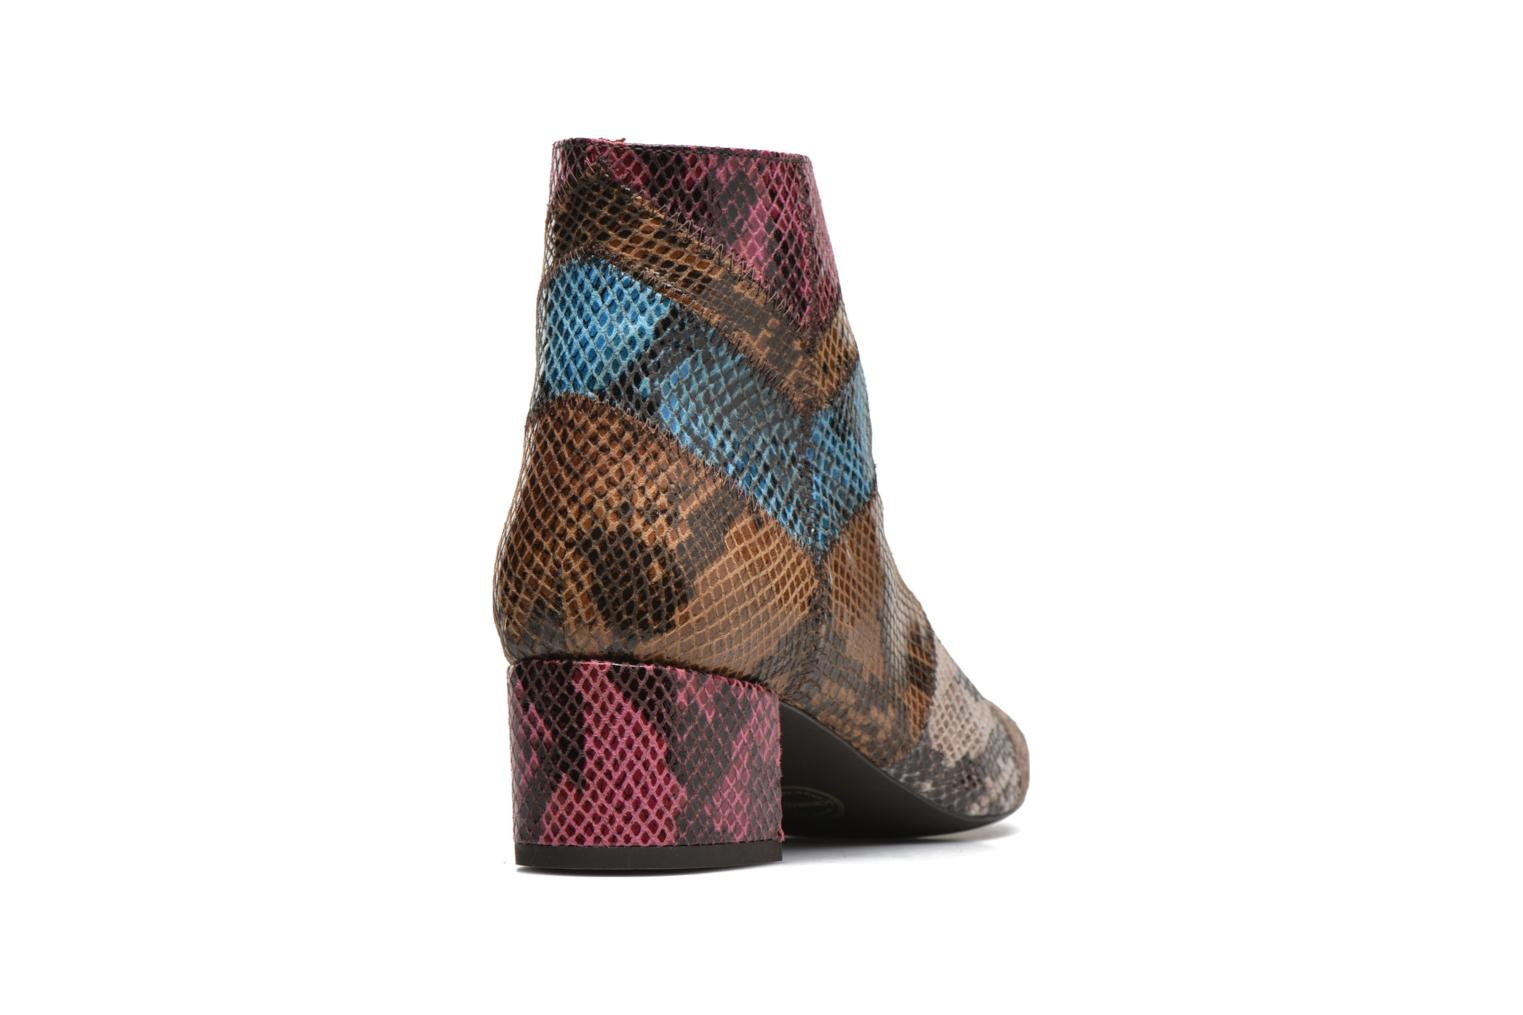 Bottines et boots Made by SARENZA See Ya Topanga #1 Multicolore vue face